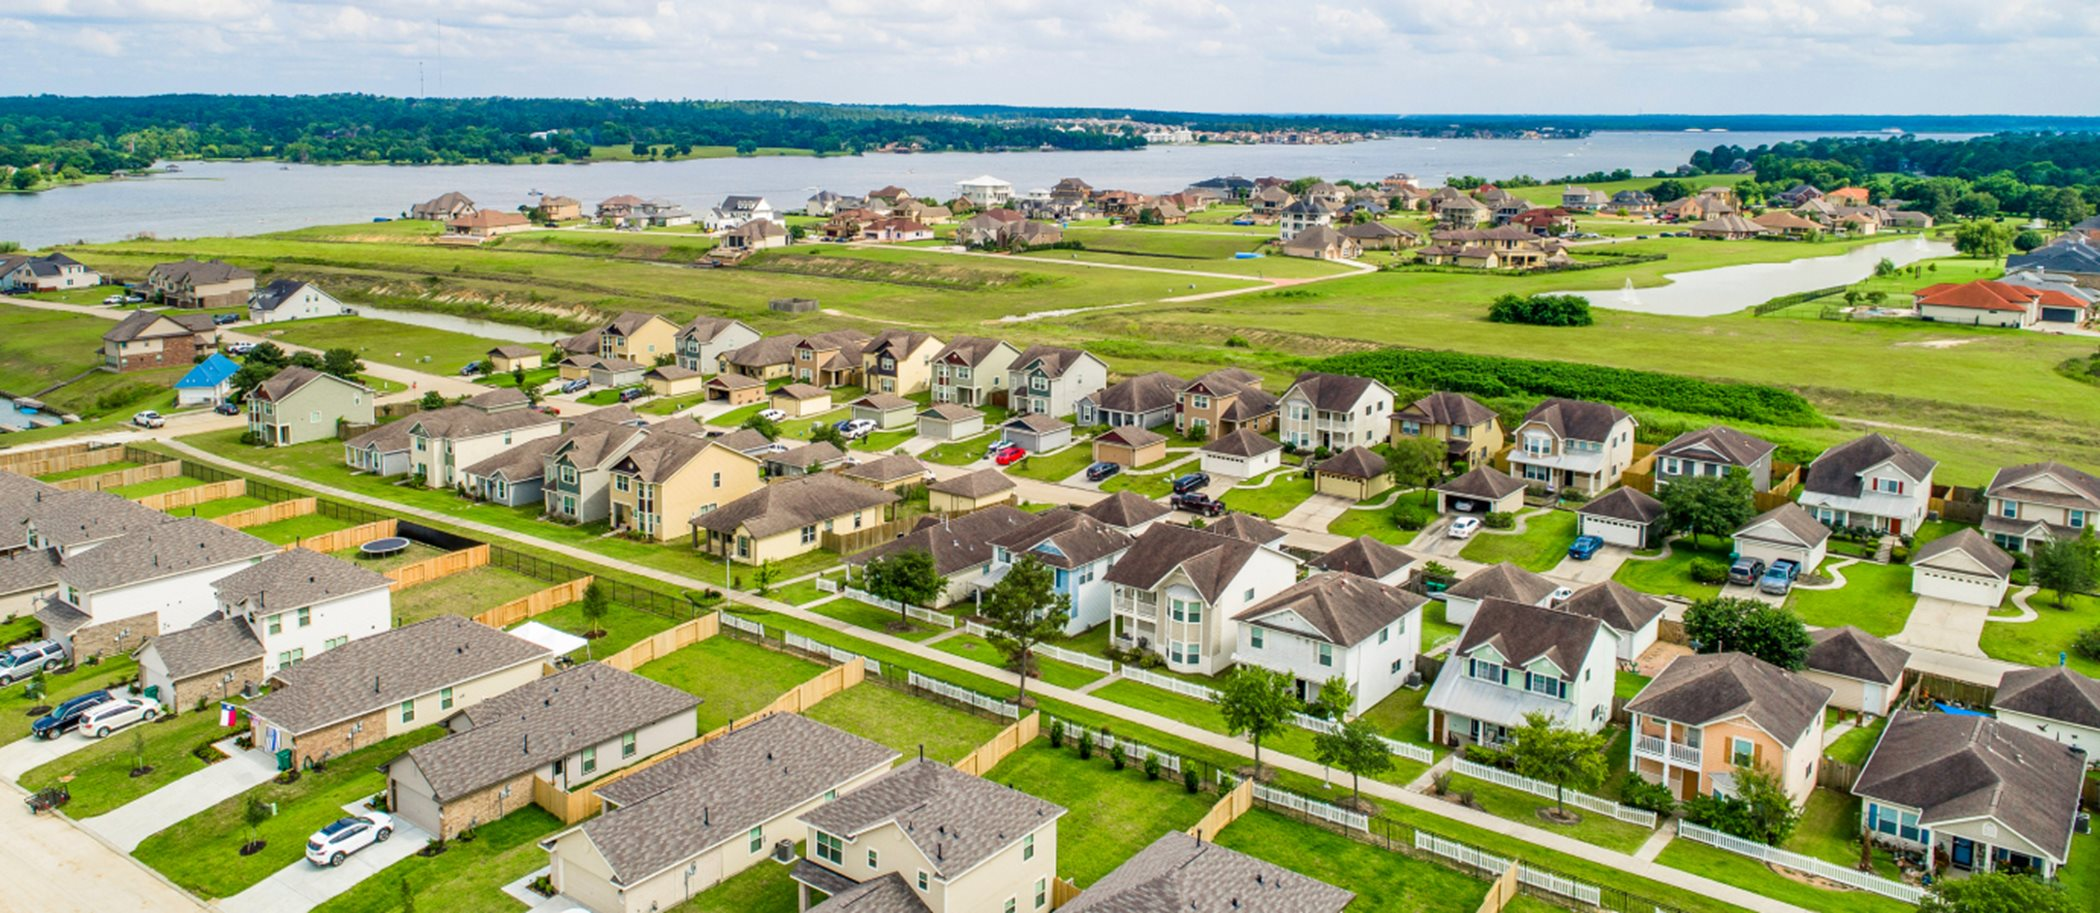 Lake Breeze - Colonial Aerial View